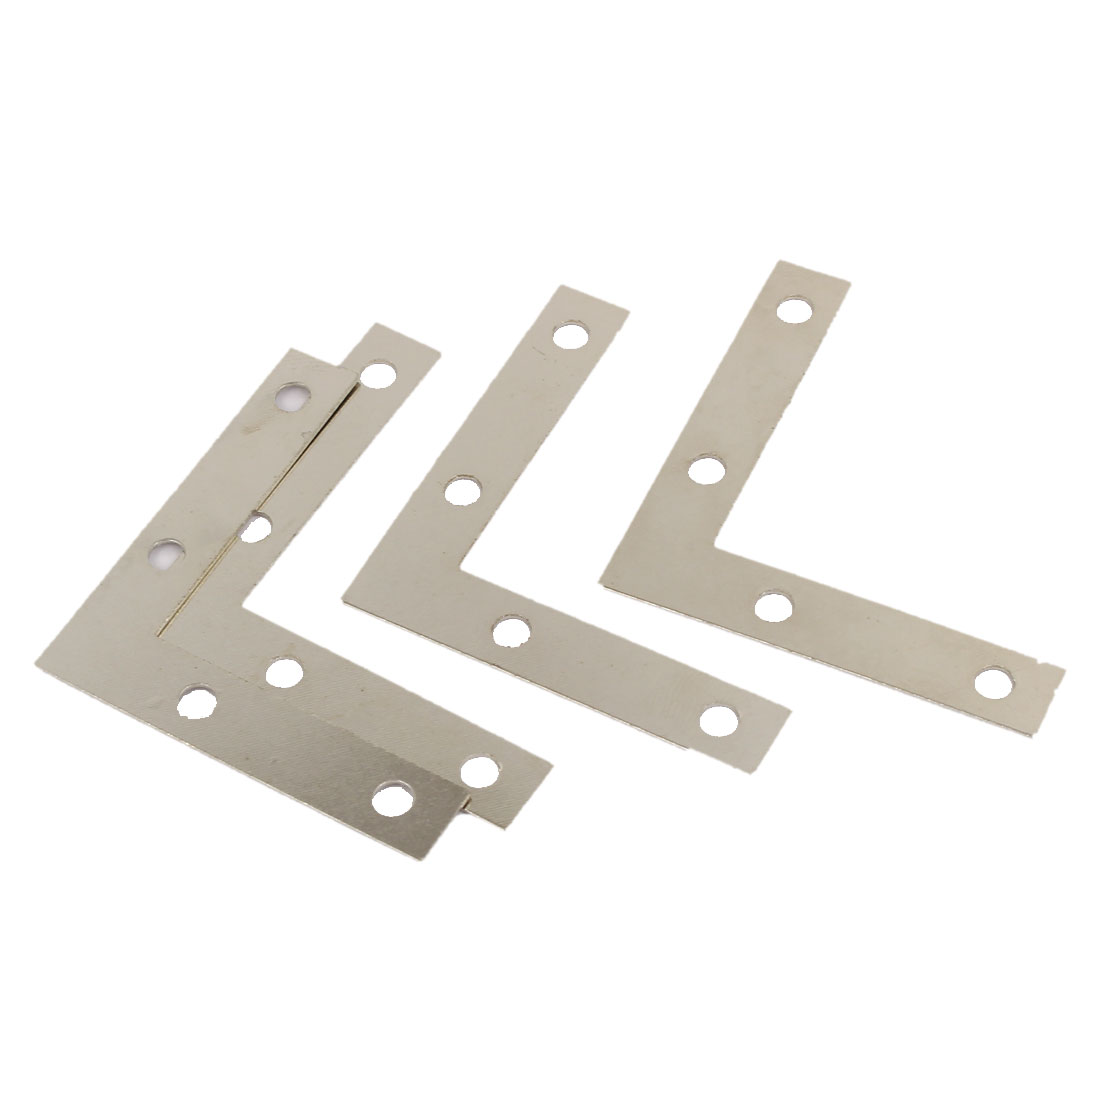 50mm x 50mm Angle Brackets Corner Braces L Shape Mending Repair Plates 4PCS